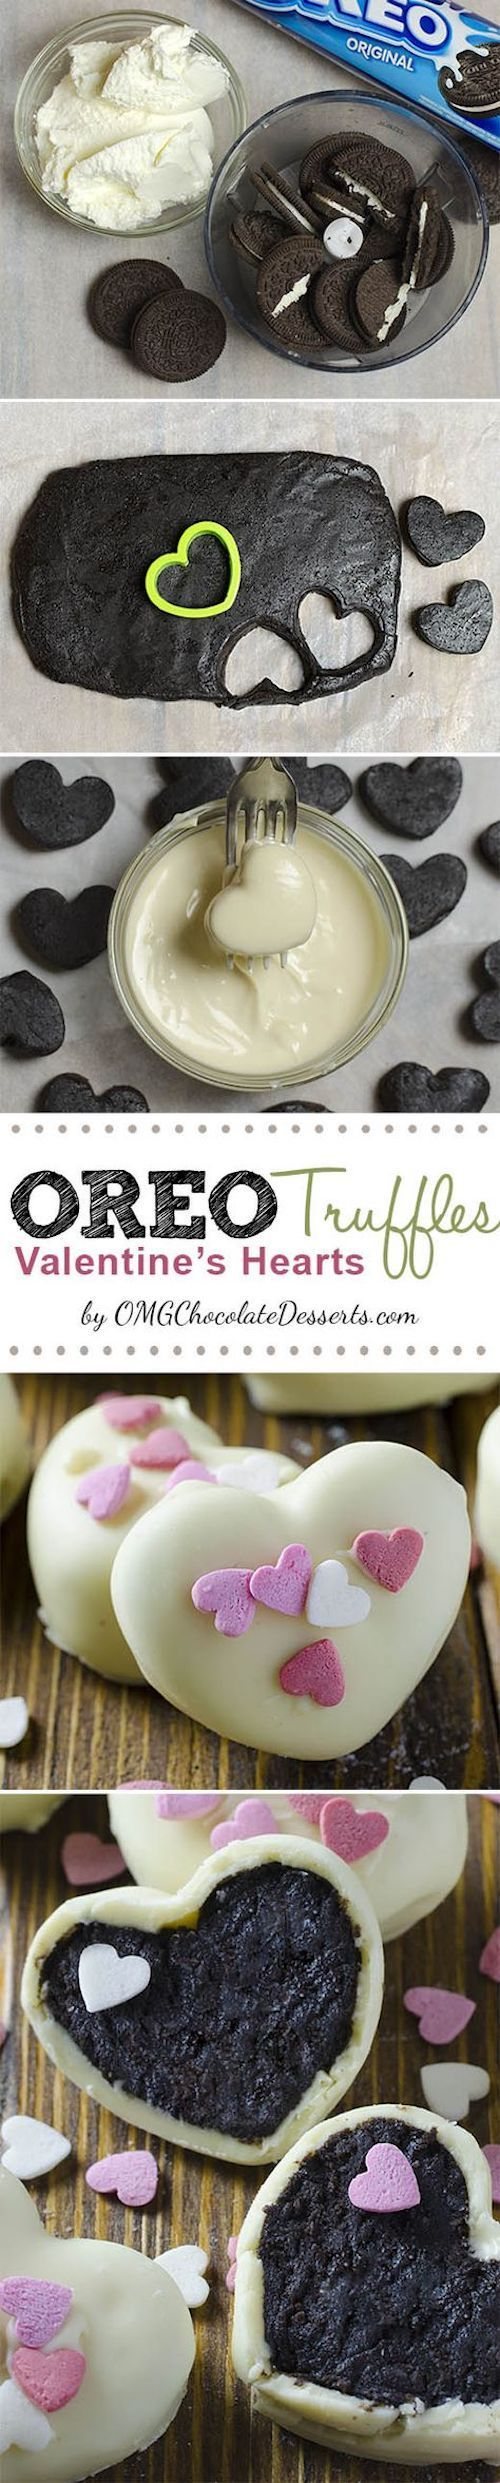 These are 3 ingredient heart shaped Oreo Cream Cheese Truffles covered with white chocolate, perfect for Valentines Day